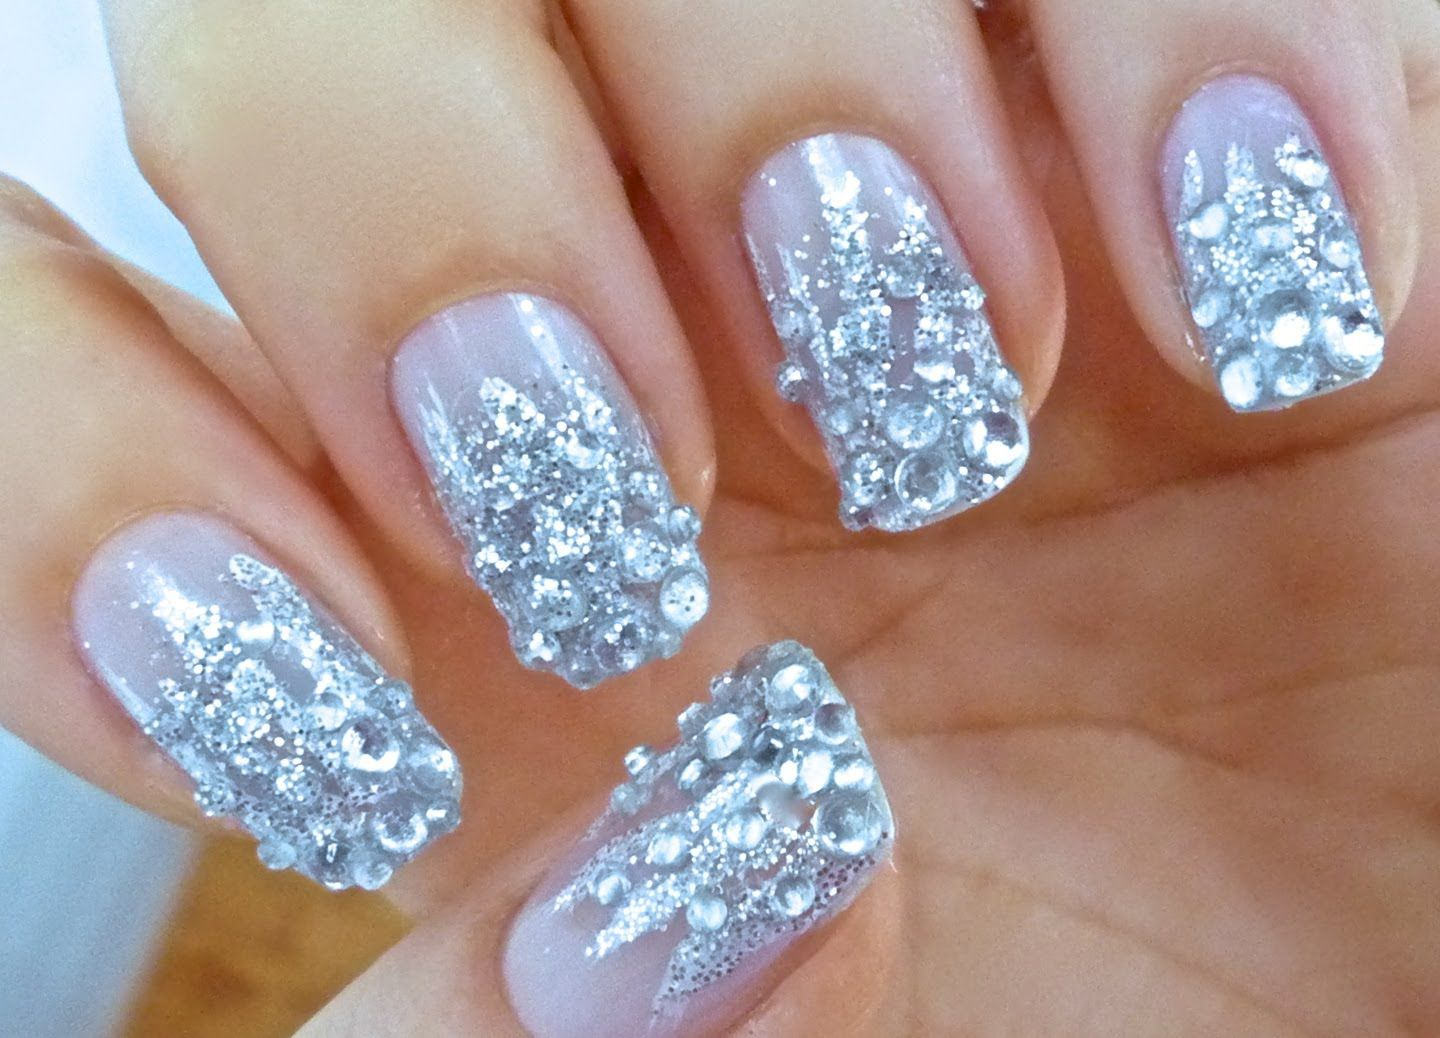 Diamante nails - love them or is it too much? | Nails, nails, nails ...